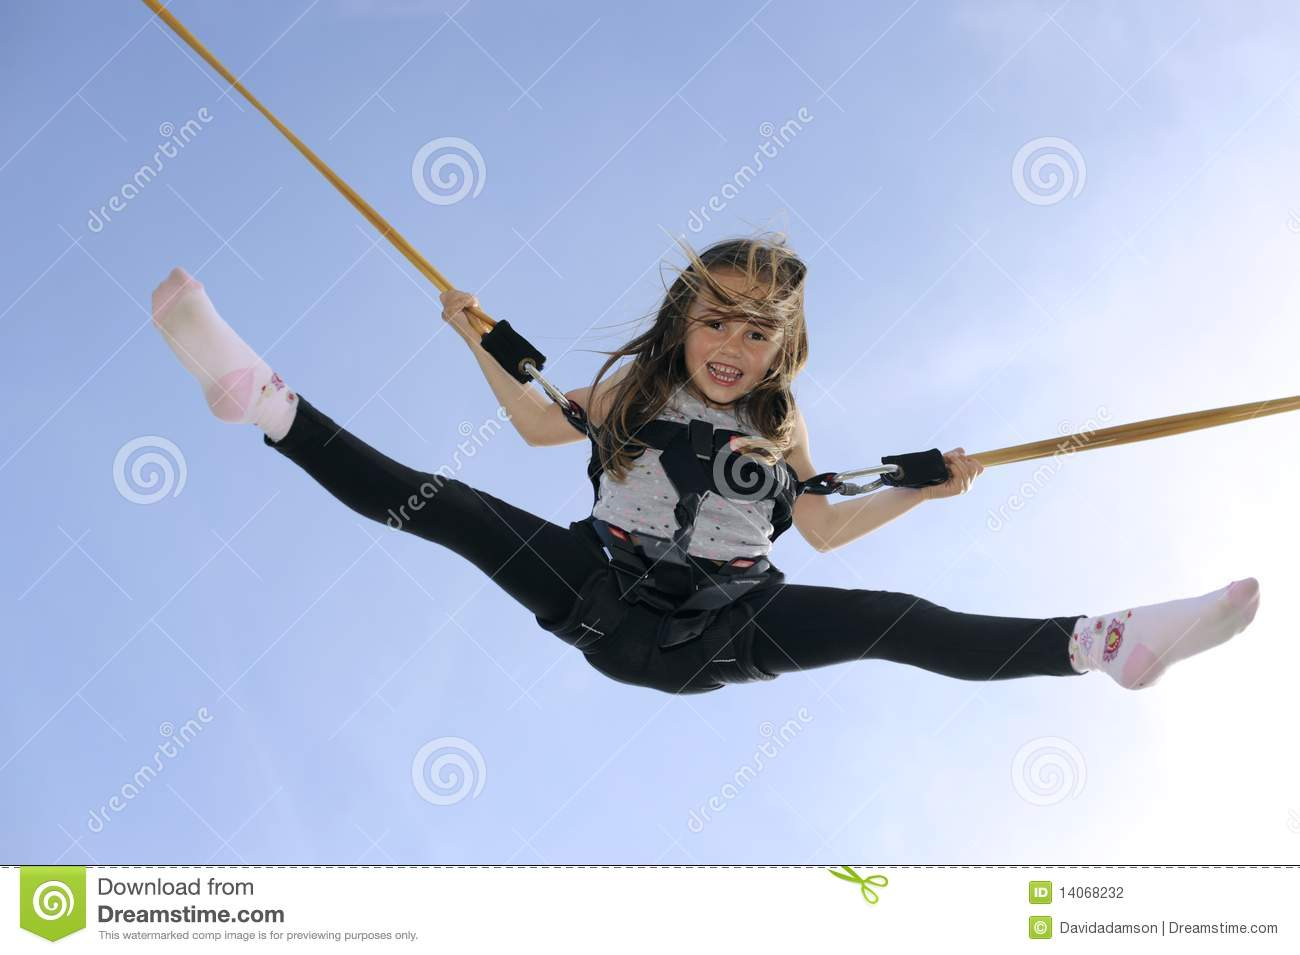 Girl Years Old Bouncing High In The Air Using A Bungee Trampoline